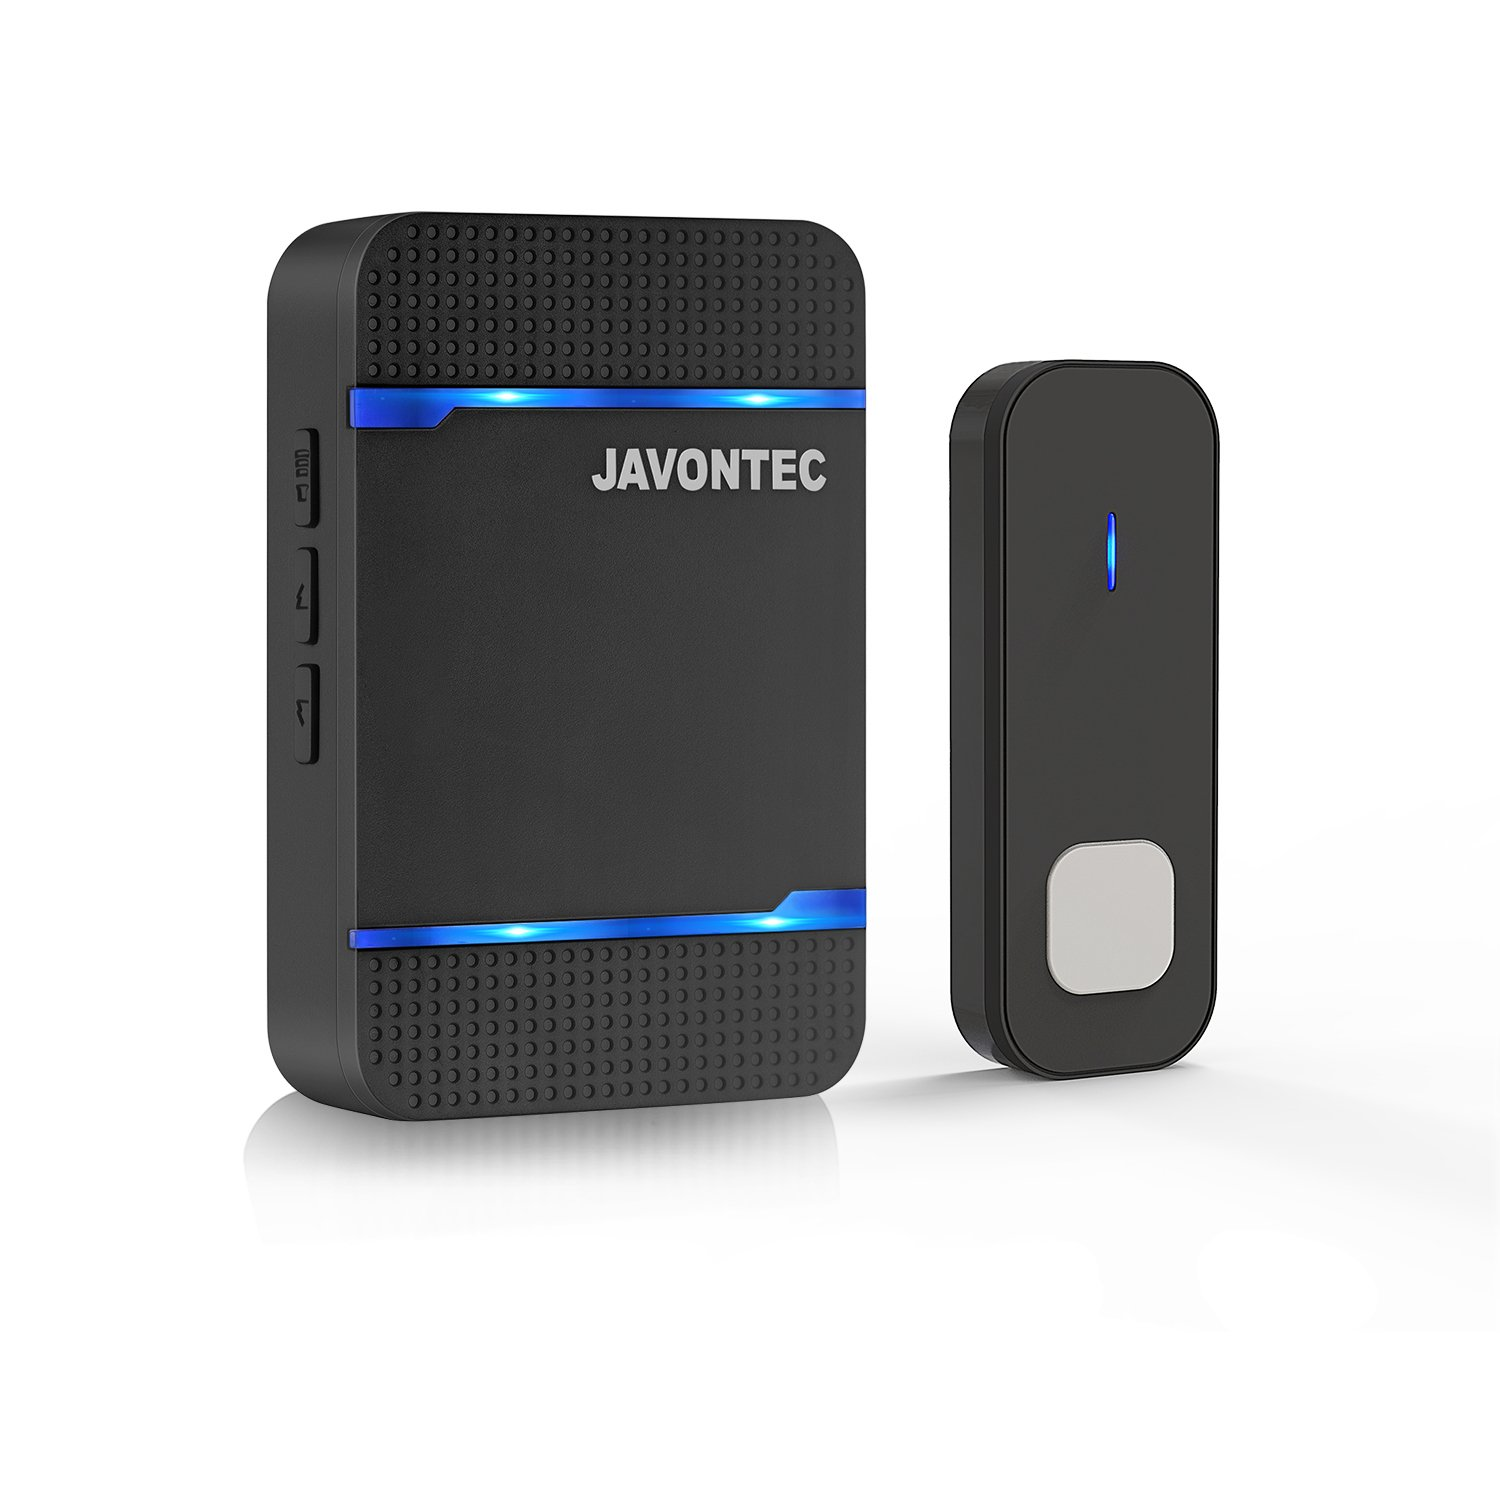 JAVONTEC Wireless Doorbell with LED Indicator Waterproof IP55 1000ft Long Range with 55 Ringtones and 5 Volume Levels 1 Plug in Receiver 1 Remote Button Black